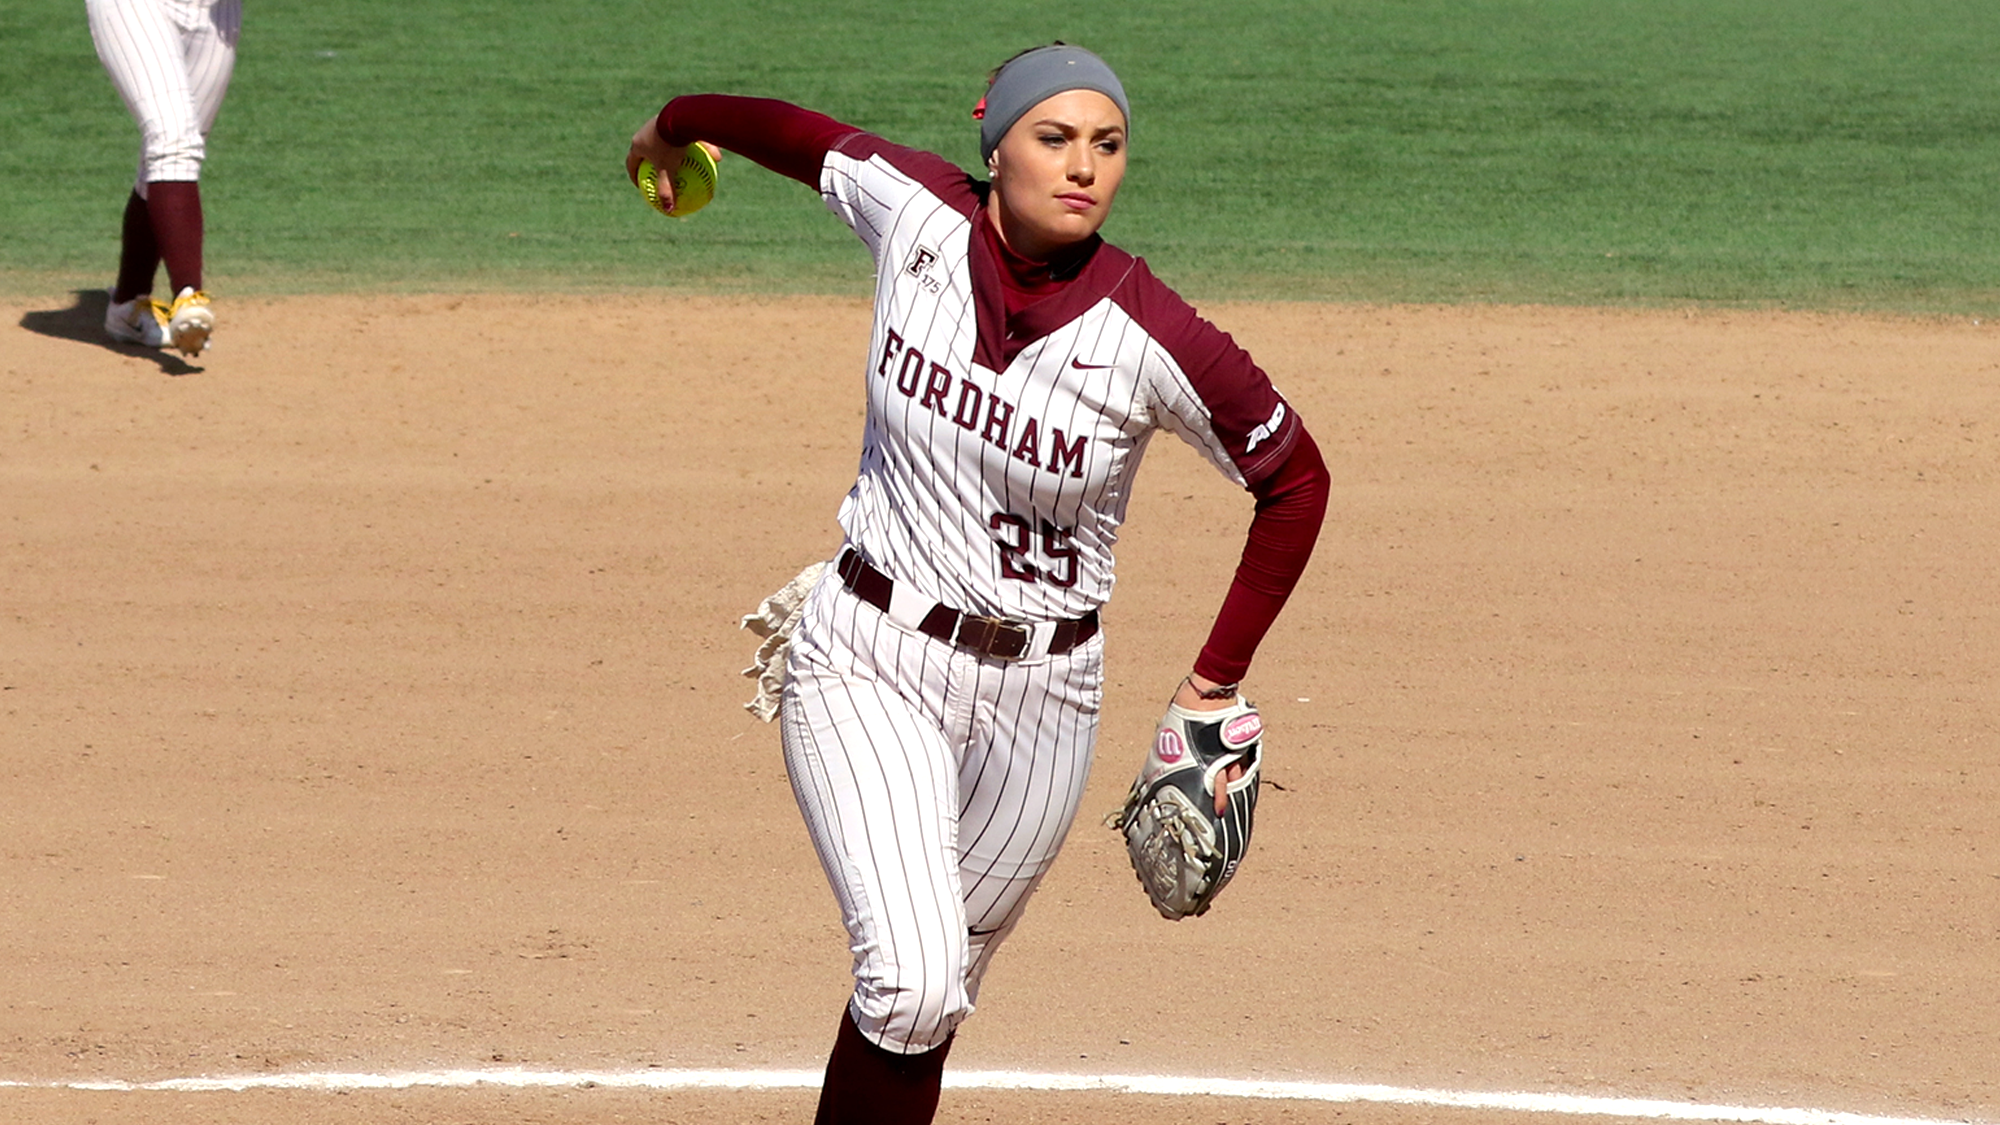 Lauren Quense was one of the main stars for the Rams this week, as they won four out of their five games played (Courtesy of Fordham Athletics).